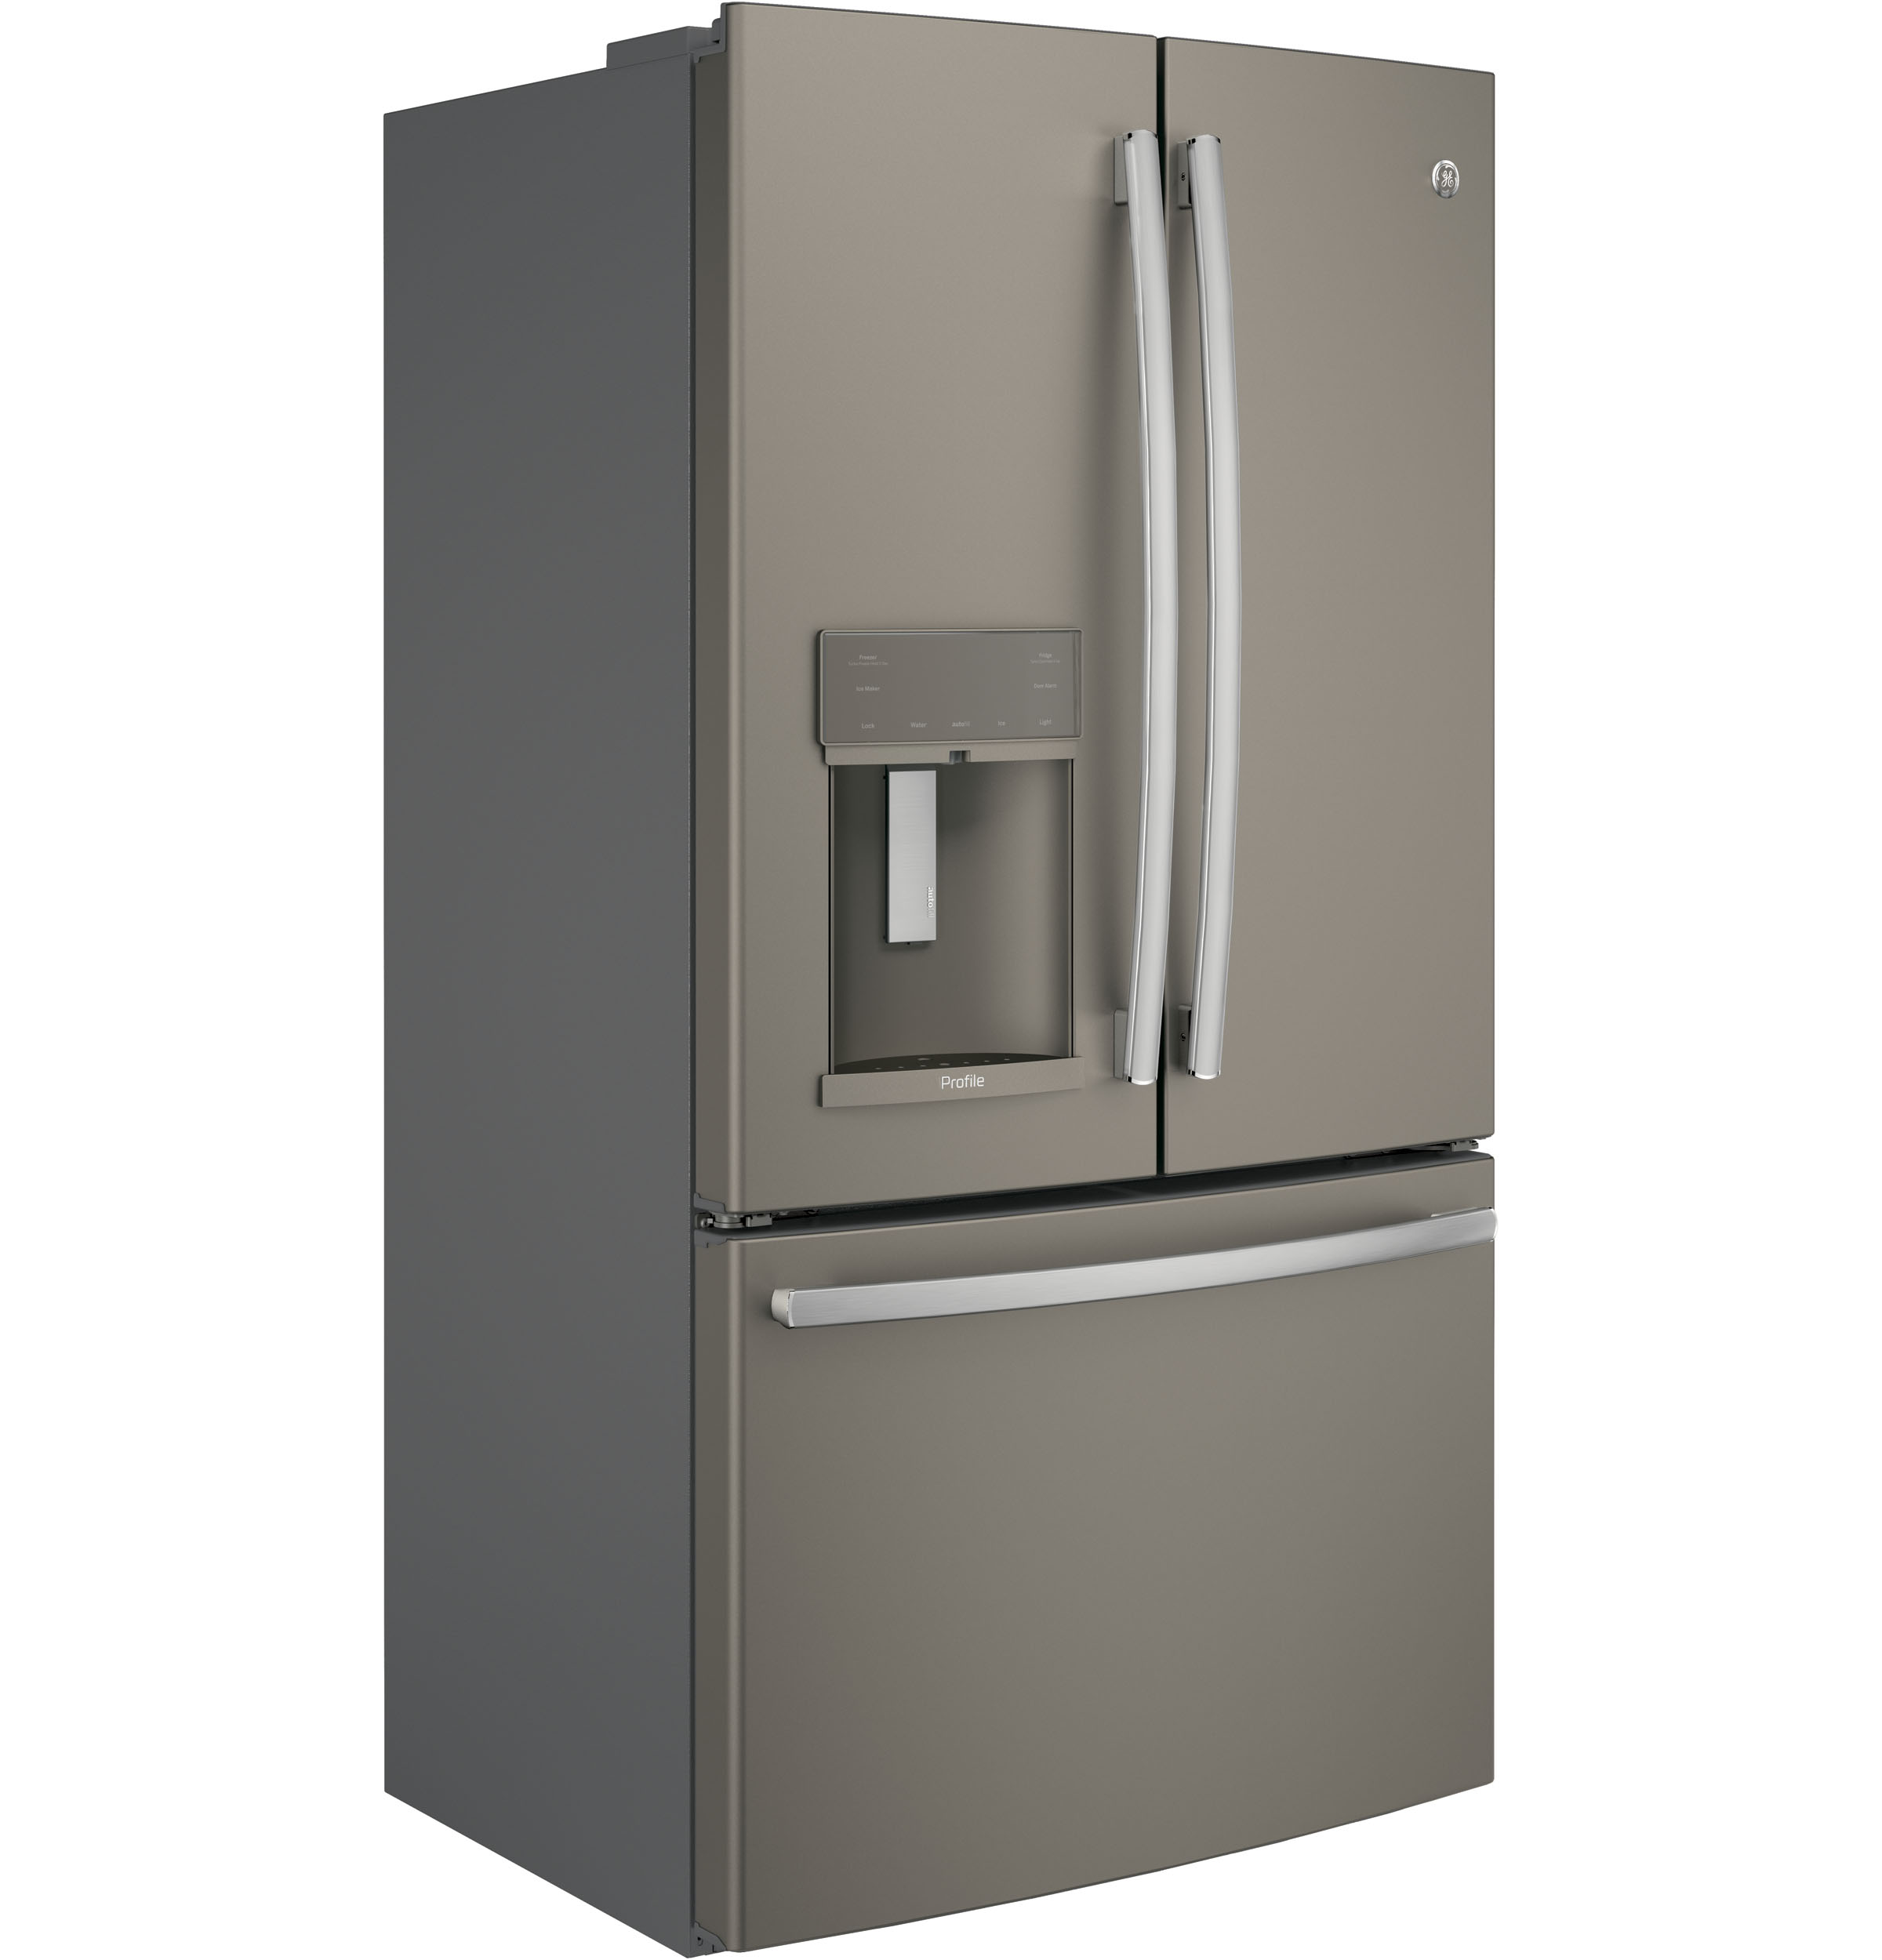 Model: PYE22KMKES | GE Profile™ Series ENERGY STAR® 22.2 Cu. Ft. Counter-Depth French-Door Refrigerator with Hands-Free AutoFill